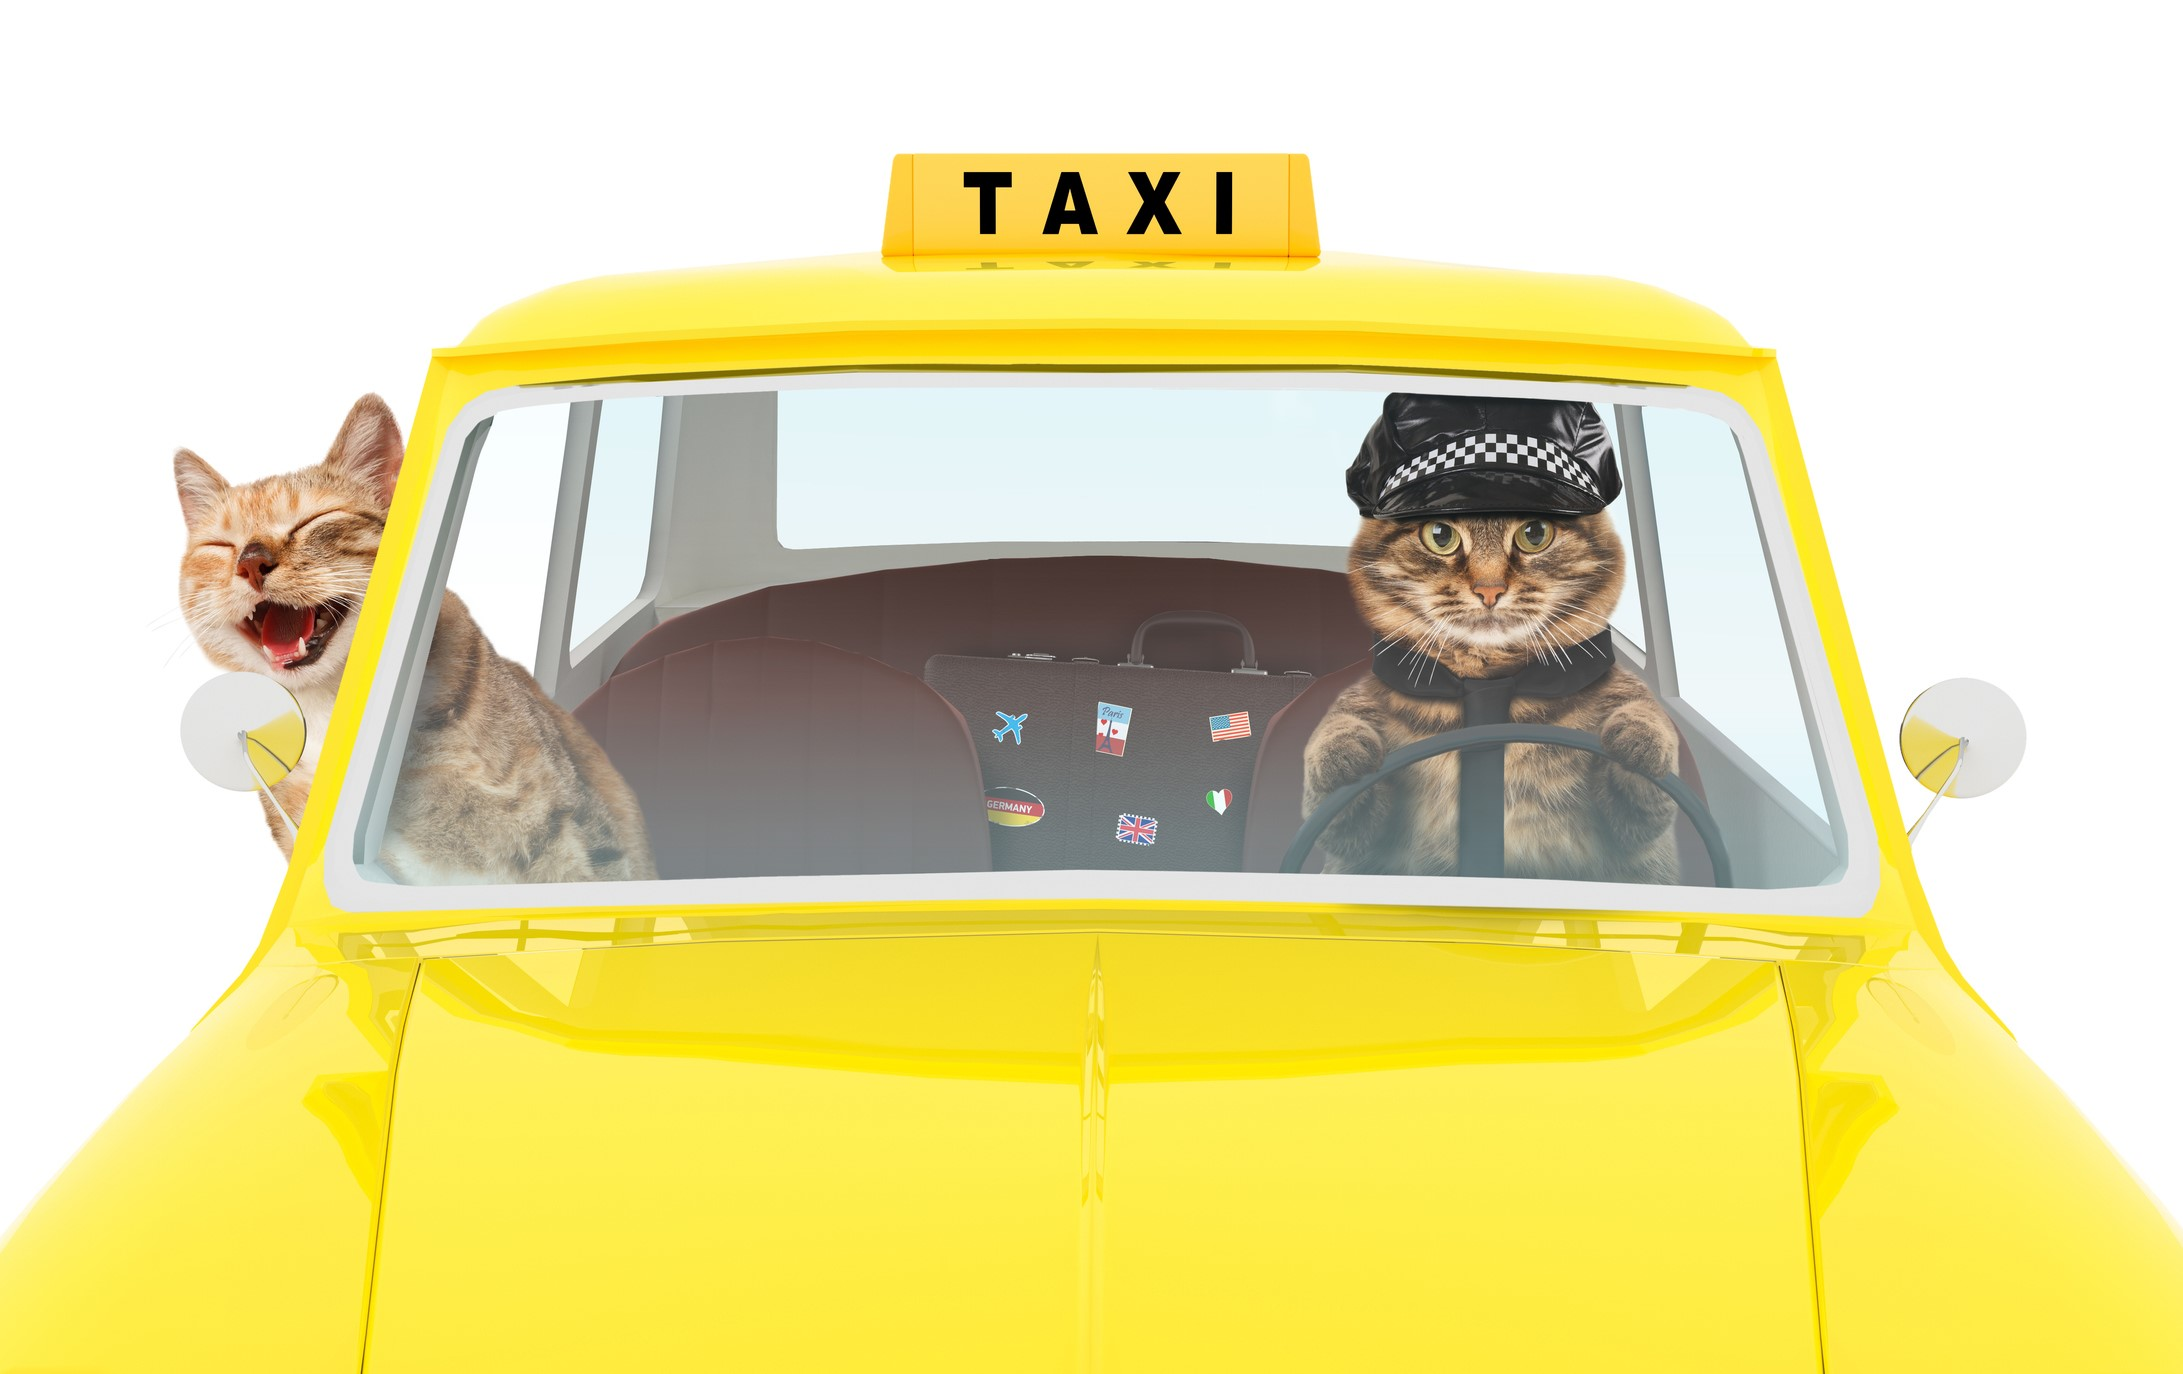 Pet Grooming Taxi - PetWow